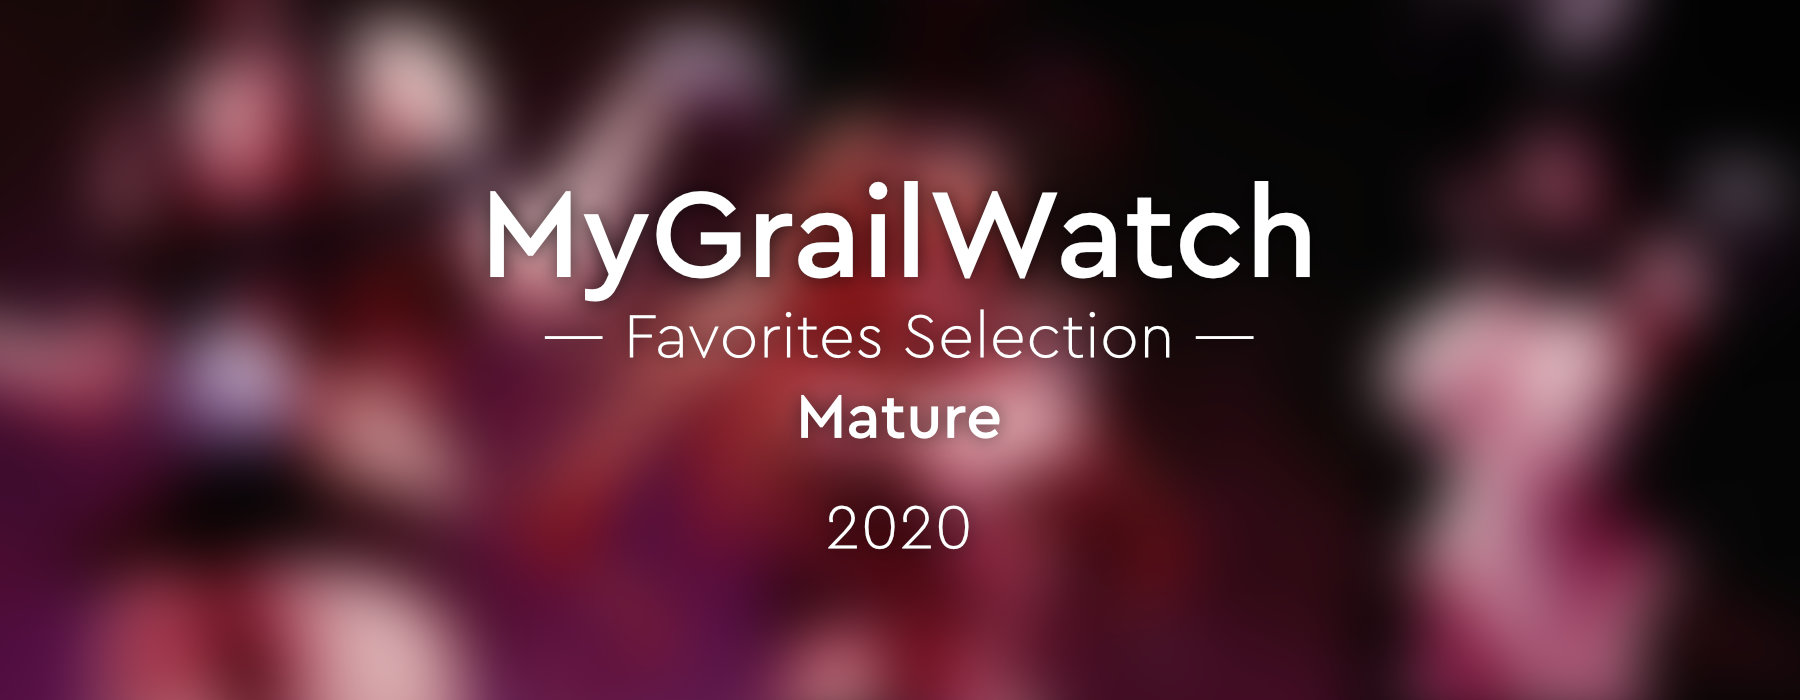 MGW Favorites Selection 2020 Mature